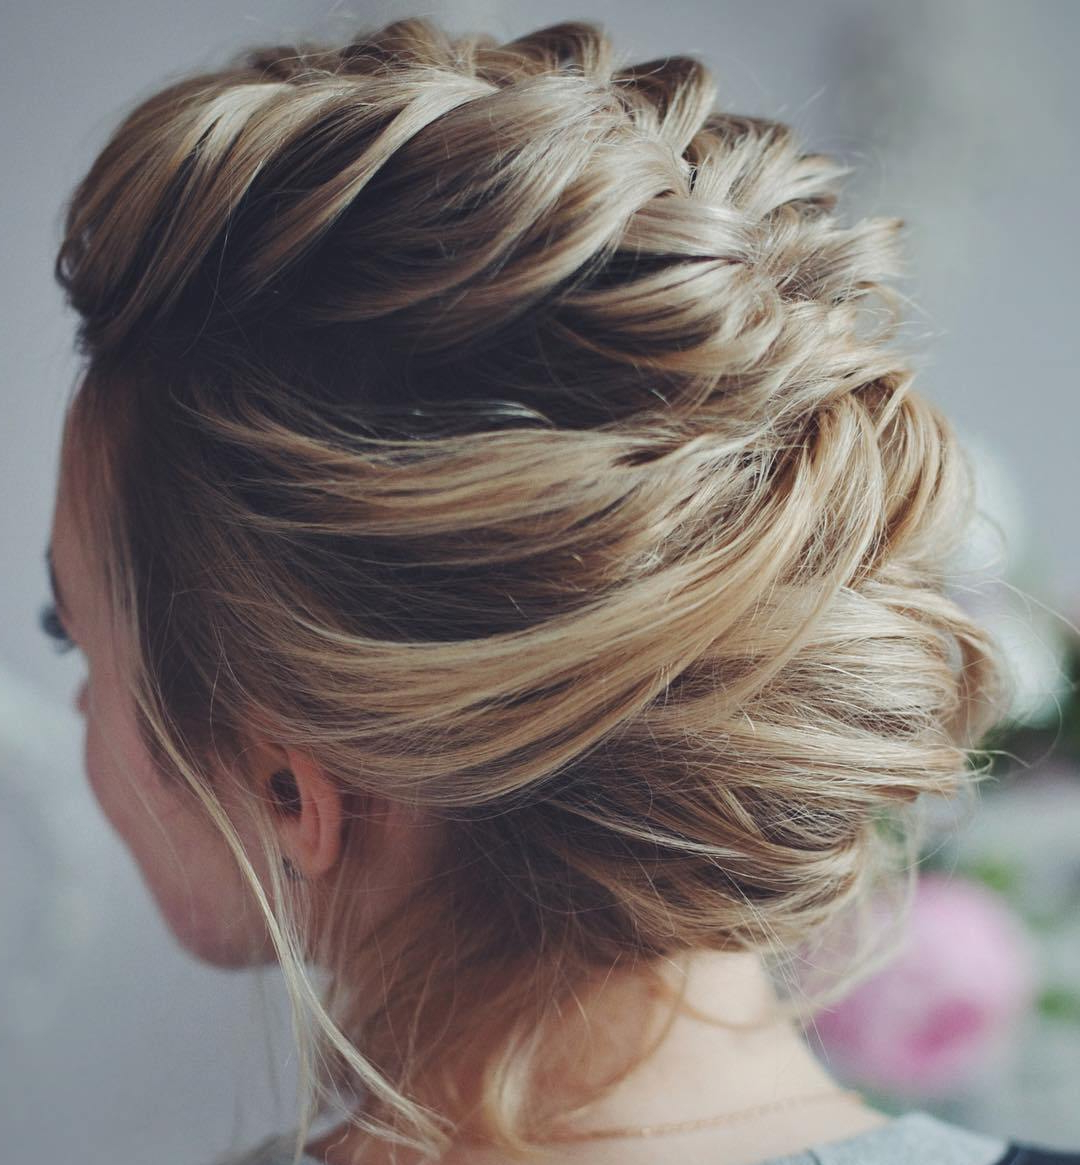 50 Hottest Prom Hairstyles For Short Hair Pertaining To Newest Messy Rope Braid Updo Hairstyles (View 16 of 20)